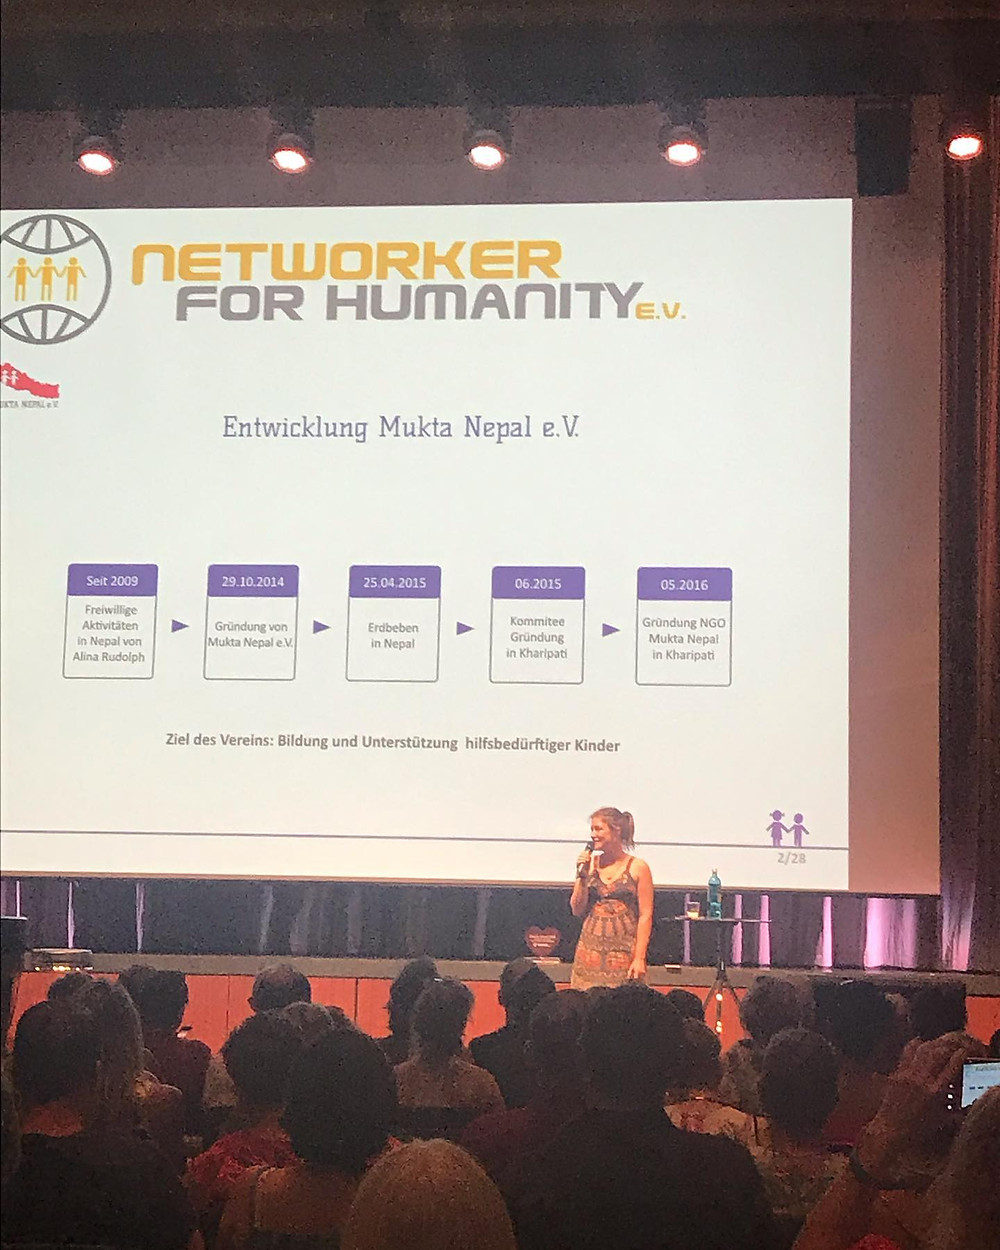 Networker for Humanity